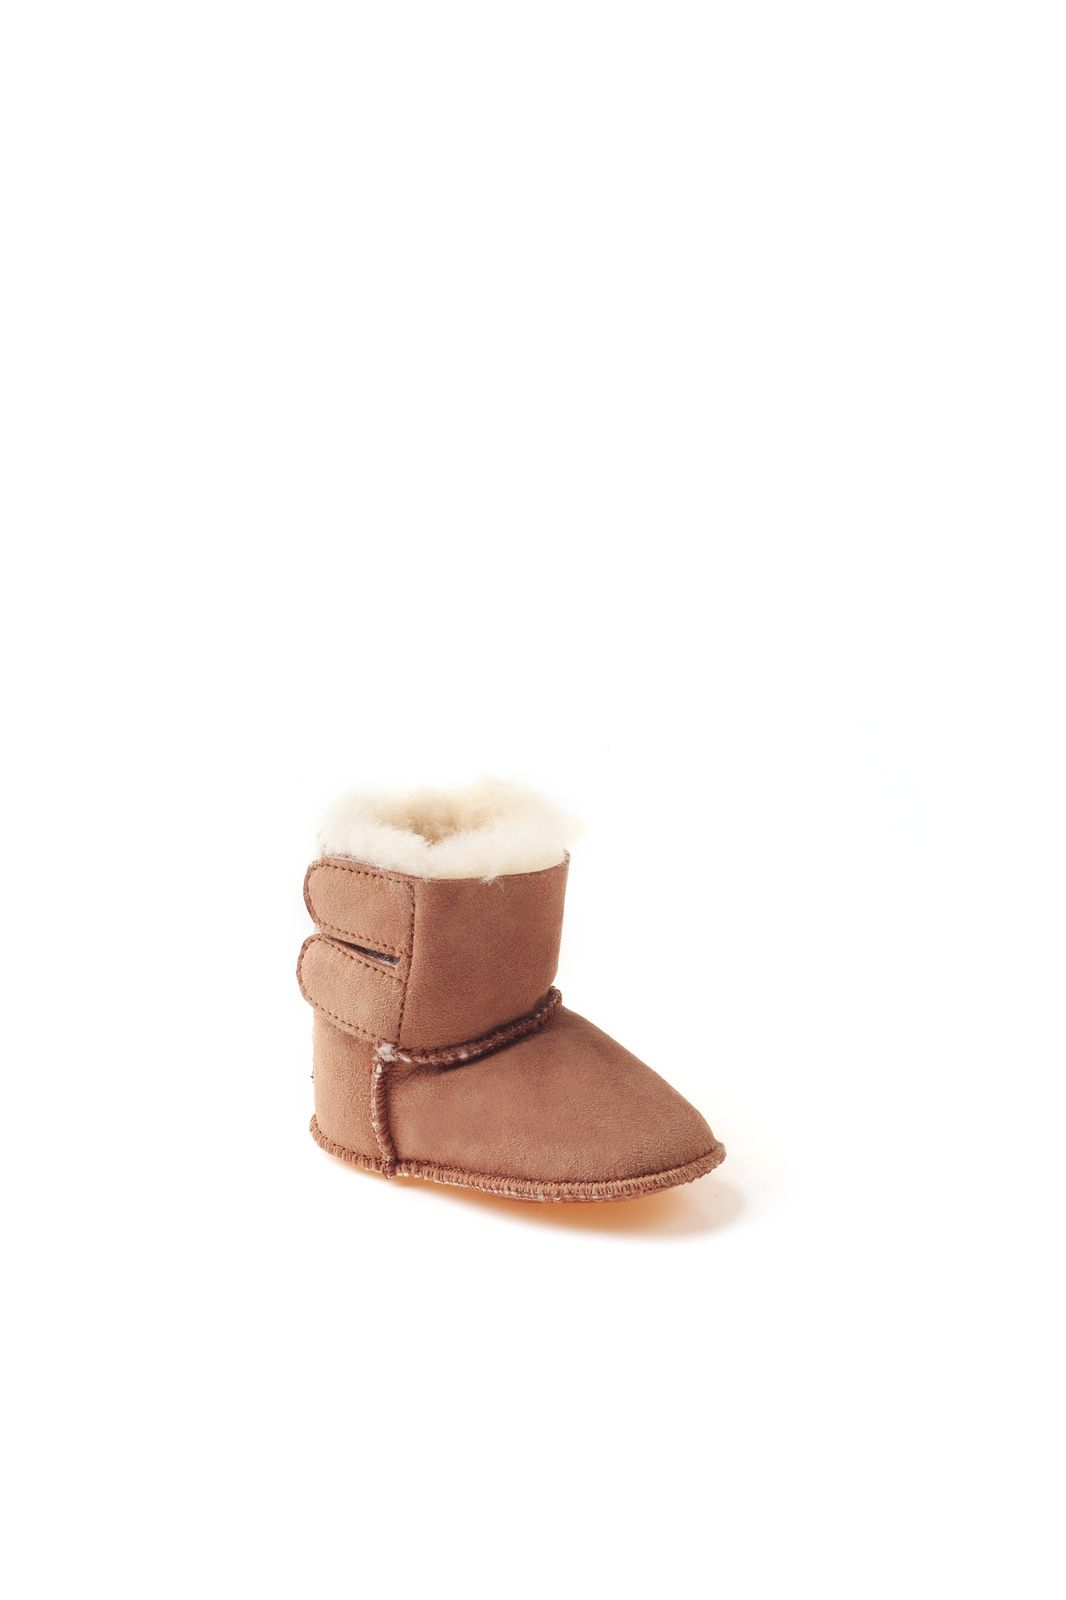 89e7b730856 Baby Ugg Boots Chestnut Size 6 months | Baby Registry | Baby uggs ...